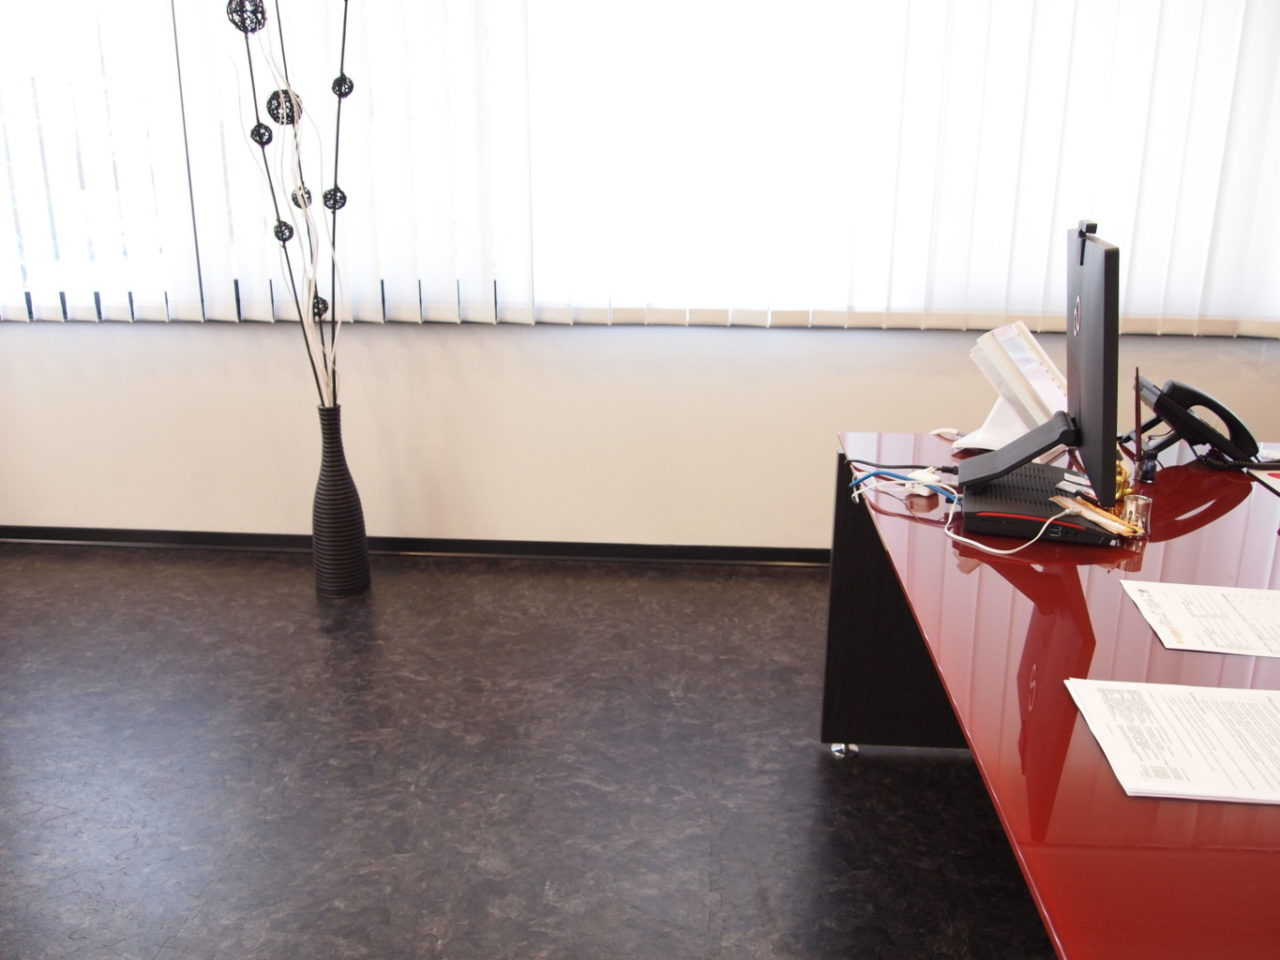 office flooring tiles. A Flooring With Logo Or Corporate Design Always Makes An Impression And There Are No Limitations The Of Printed Office Floorings. Tiles